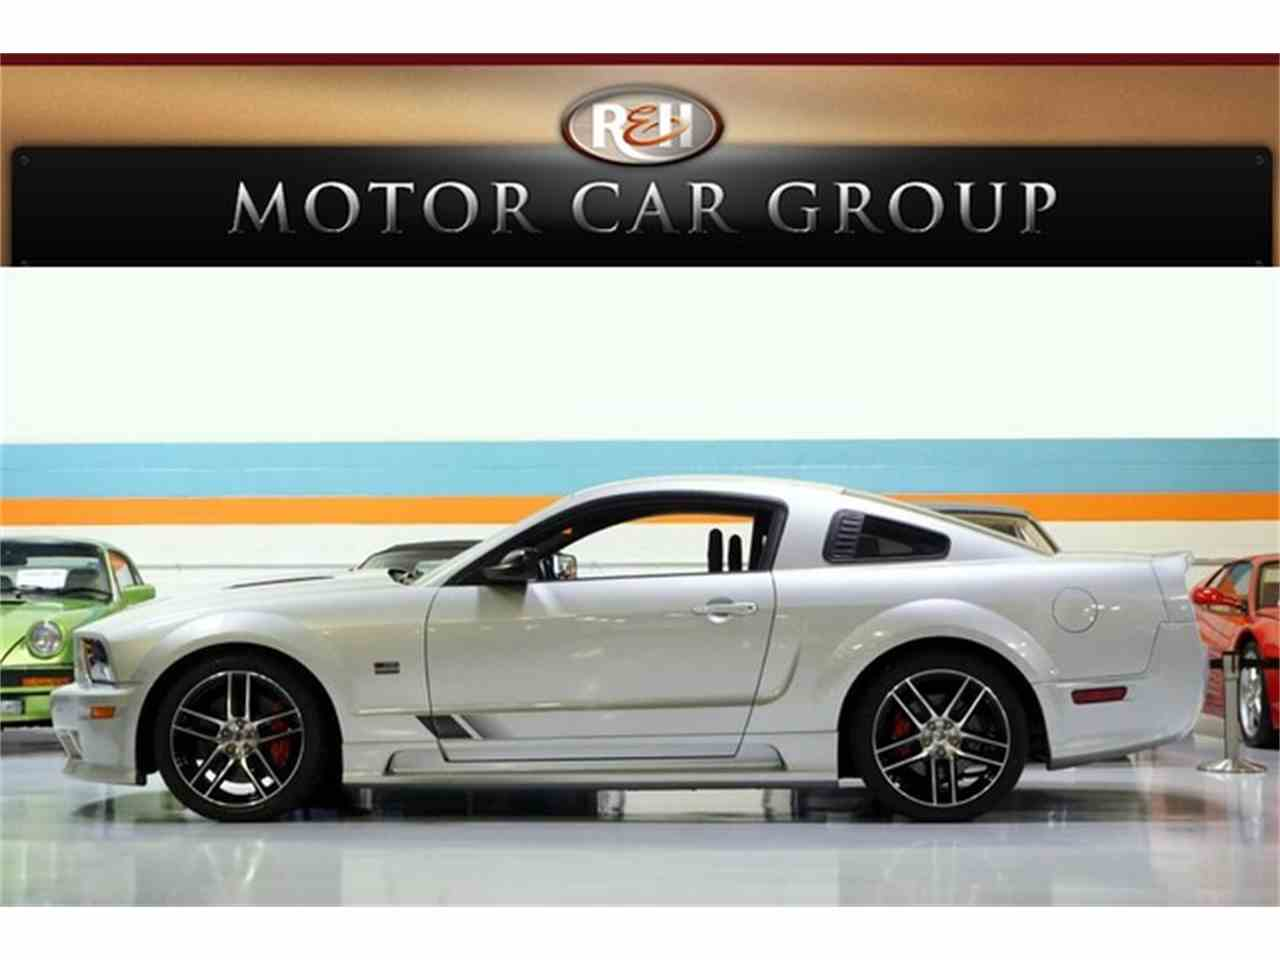 Large Picture of '06 Ford Mustang located in Ohio Offered by R&H Motor Car Group - JHI8